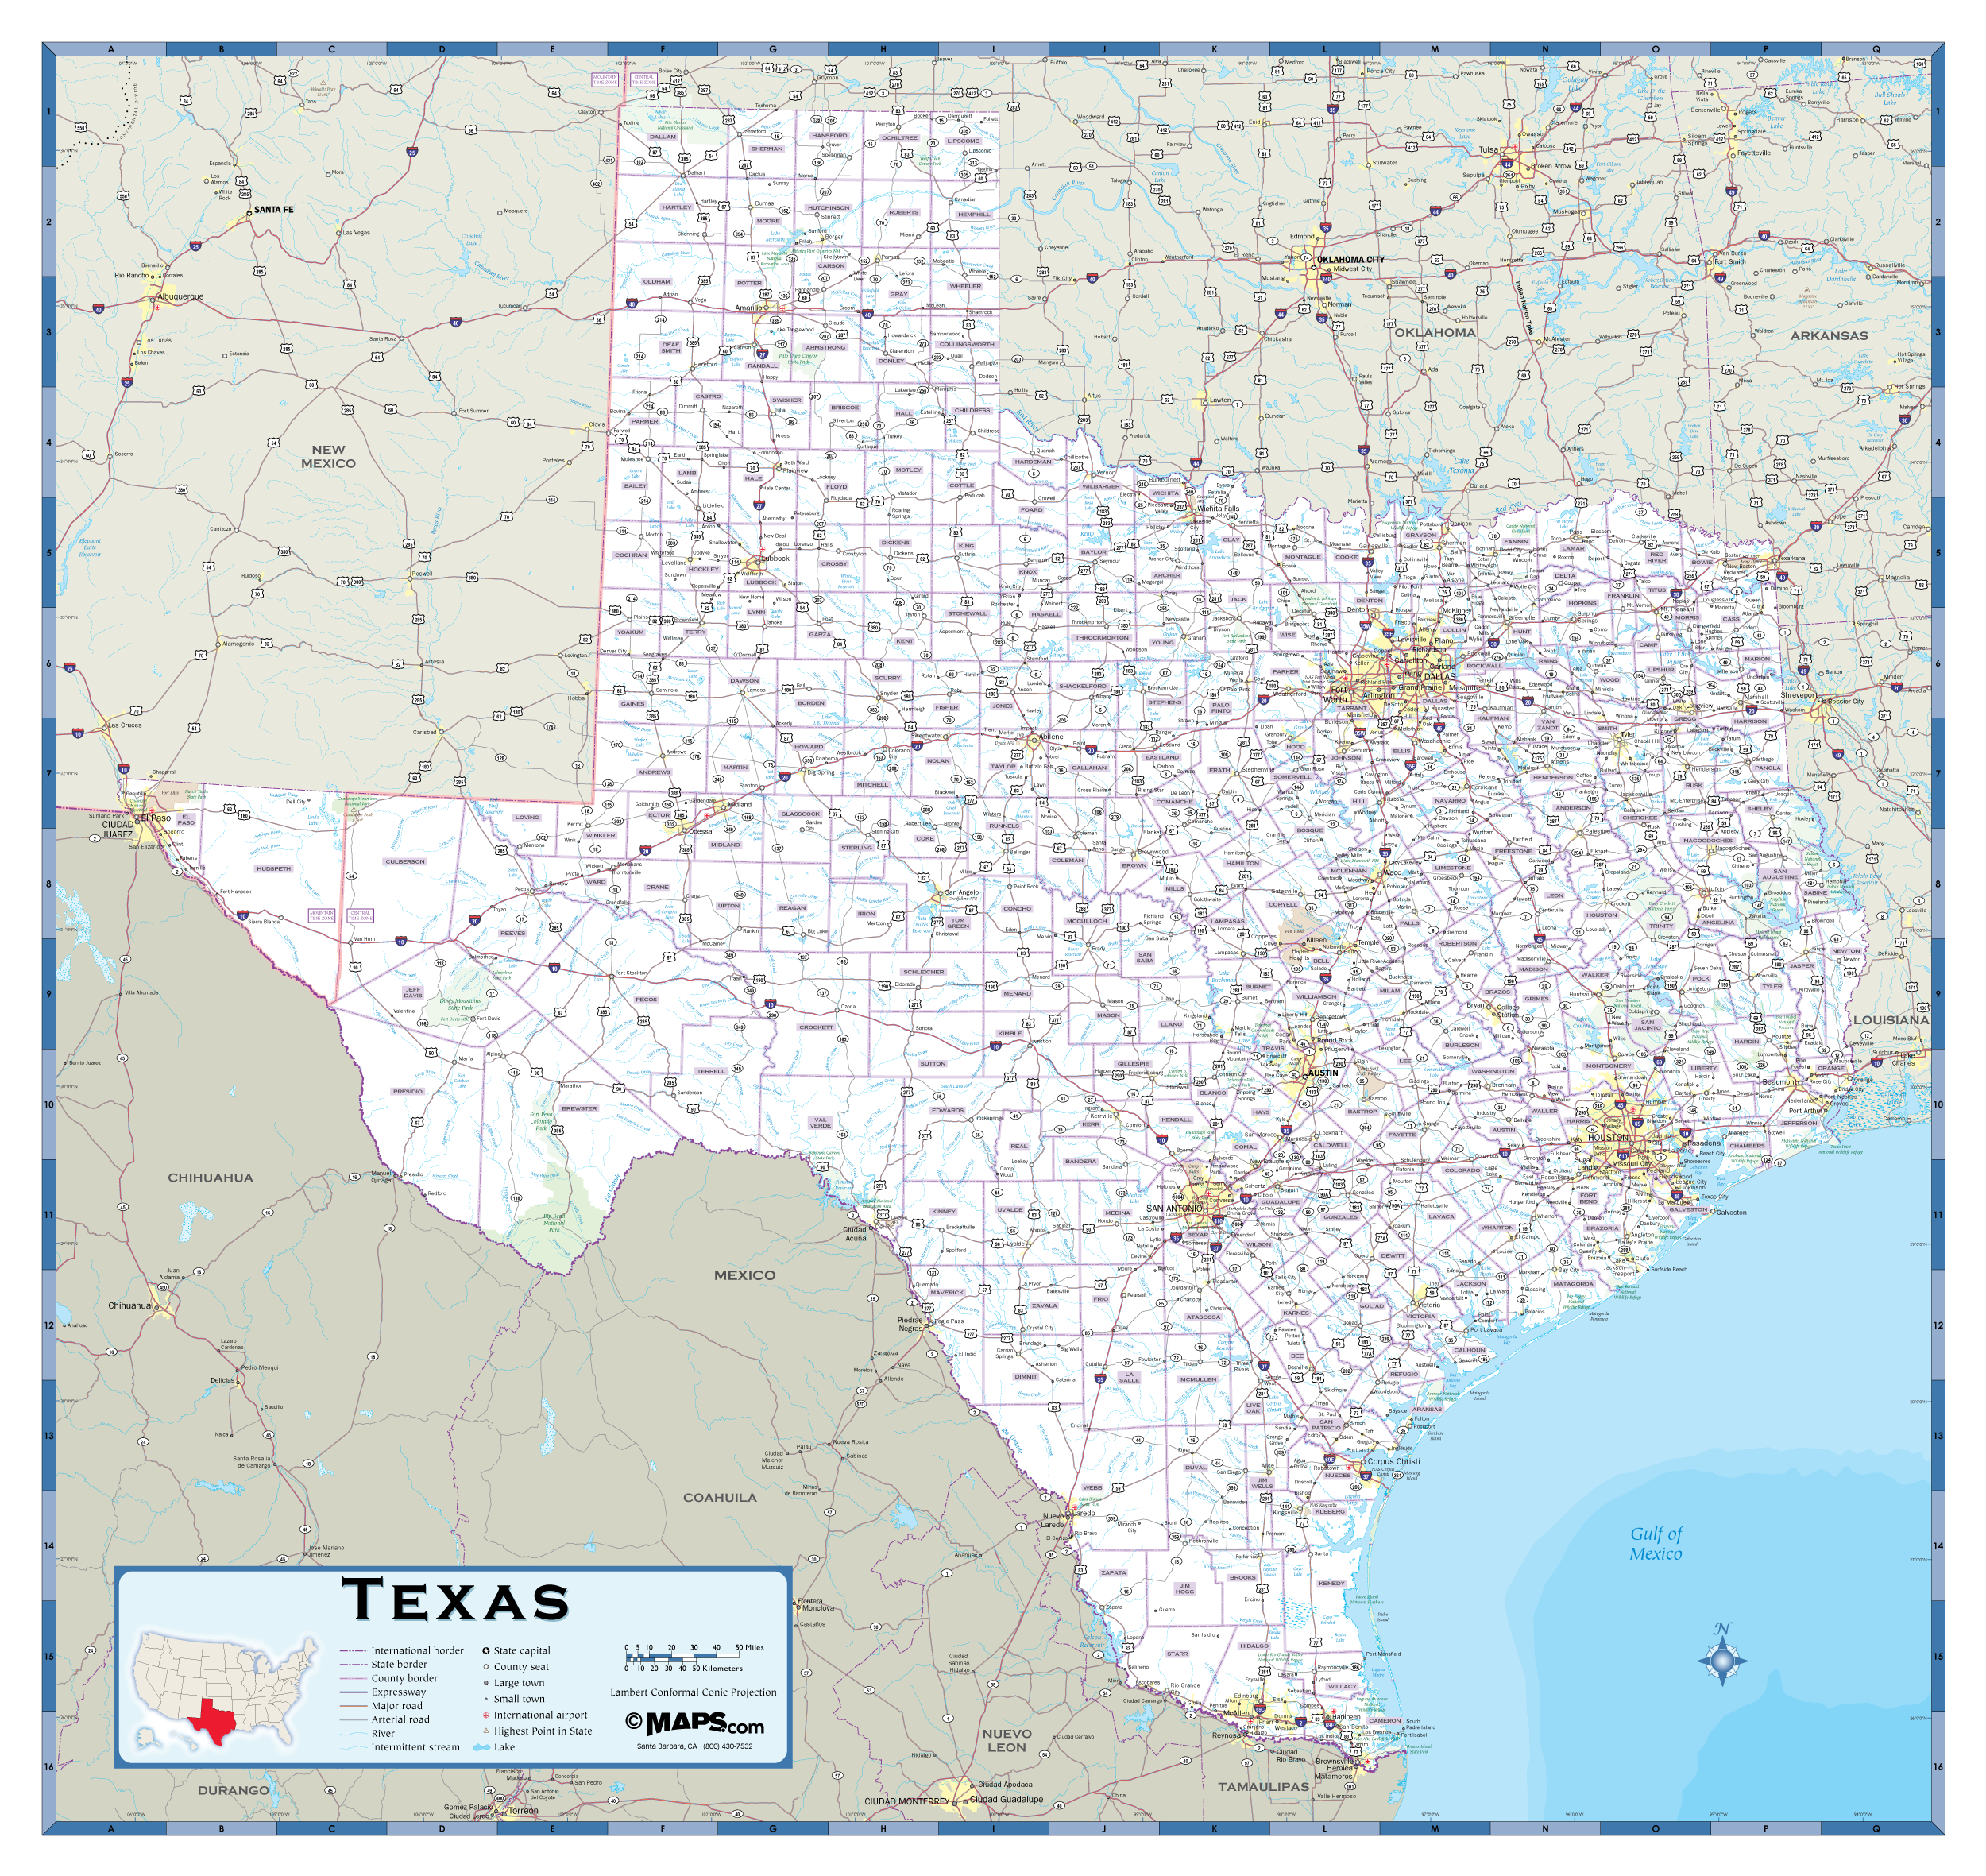 Texas Highway Wall Map - Maps - Texas Maps For Sale